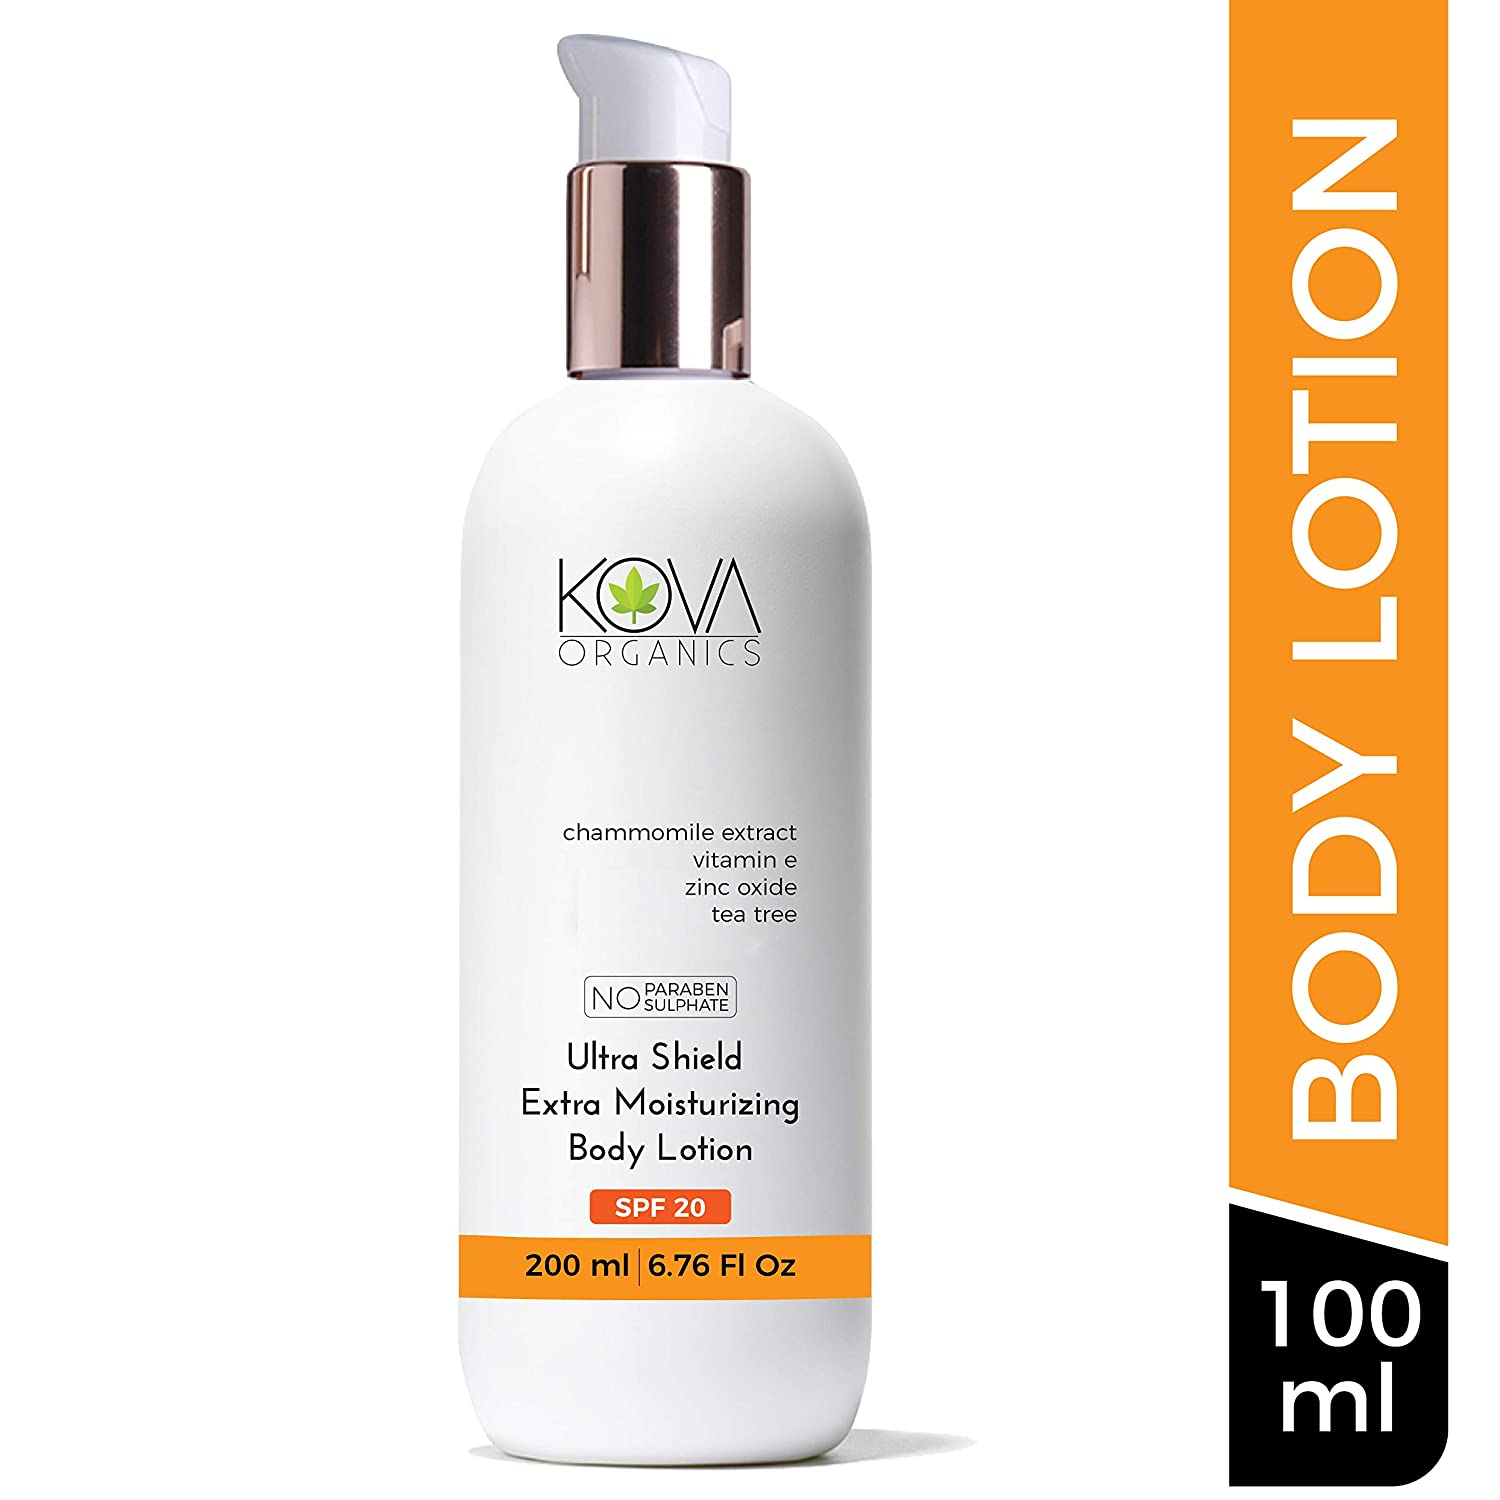 Kova Organics SPF 20 Body Lotion Ultra Shield Extra Moisturizing, Premium Non Sticky Body Lotion For Smooth and Radiant Skin, Fast Absorbing Body Lotion Gives All Day Moisture 200ml